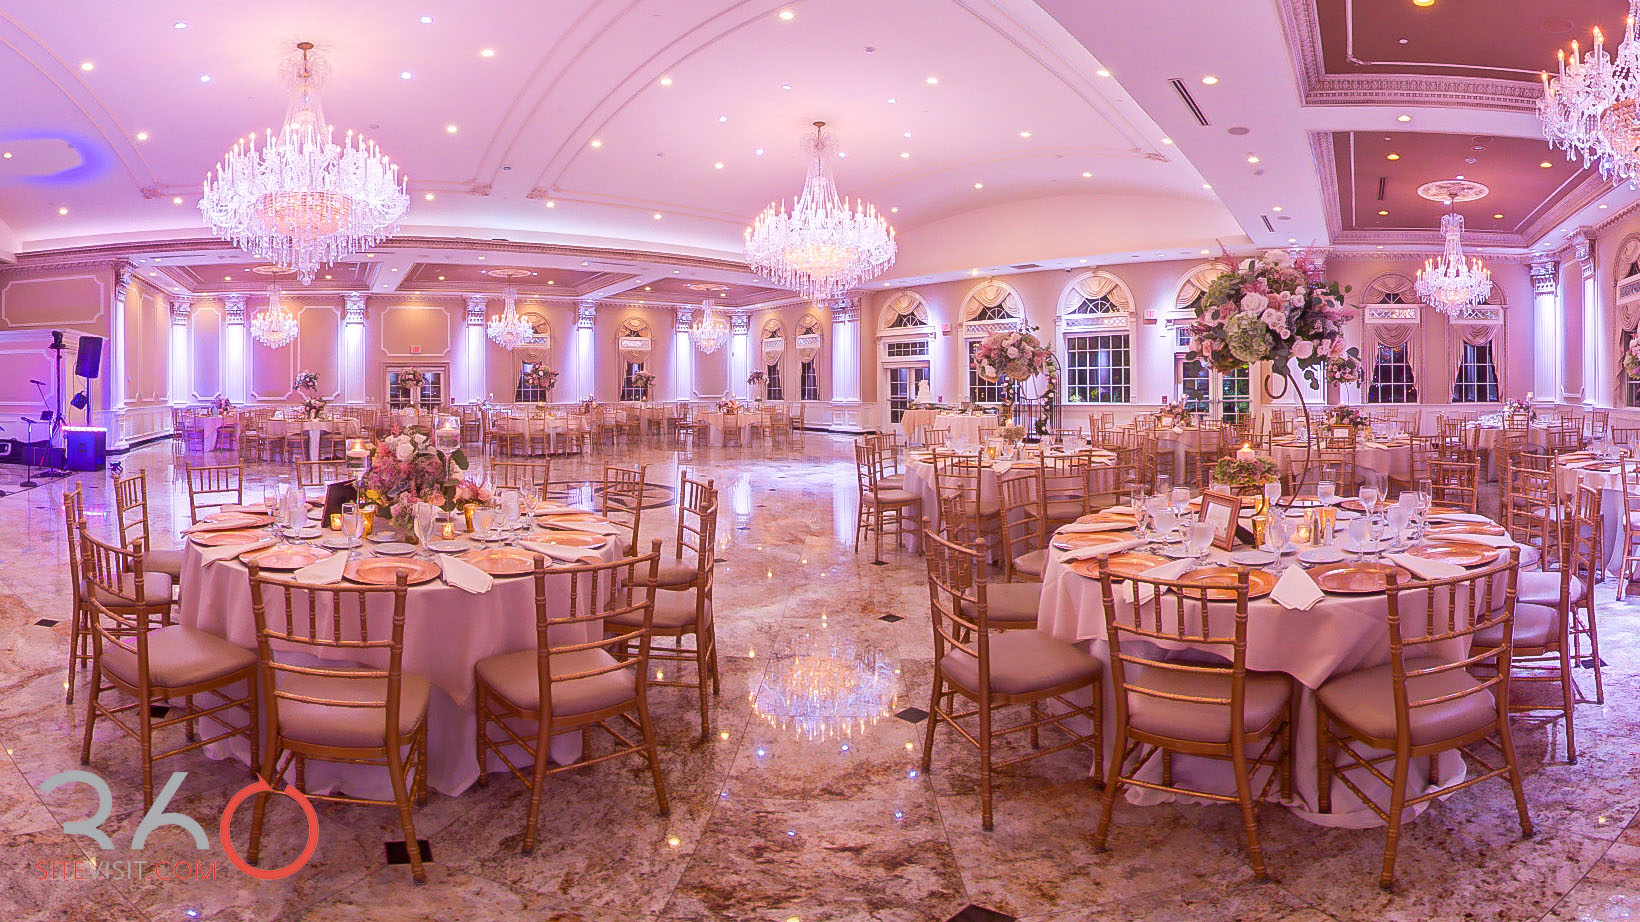 34-Old Tappan Manor Banquet Hall Old Tappan, NJ Wedding Venue Virtual tour by 360sitevisit.com